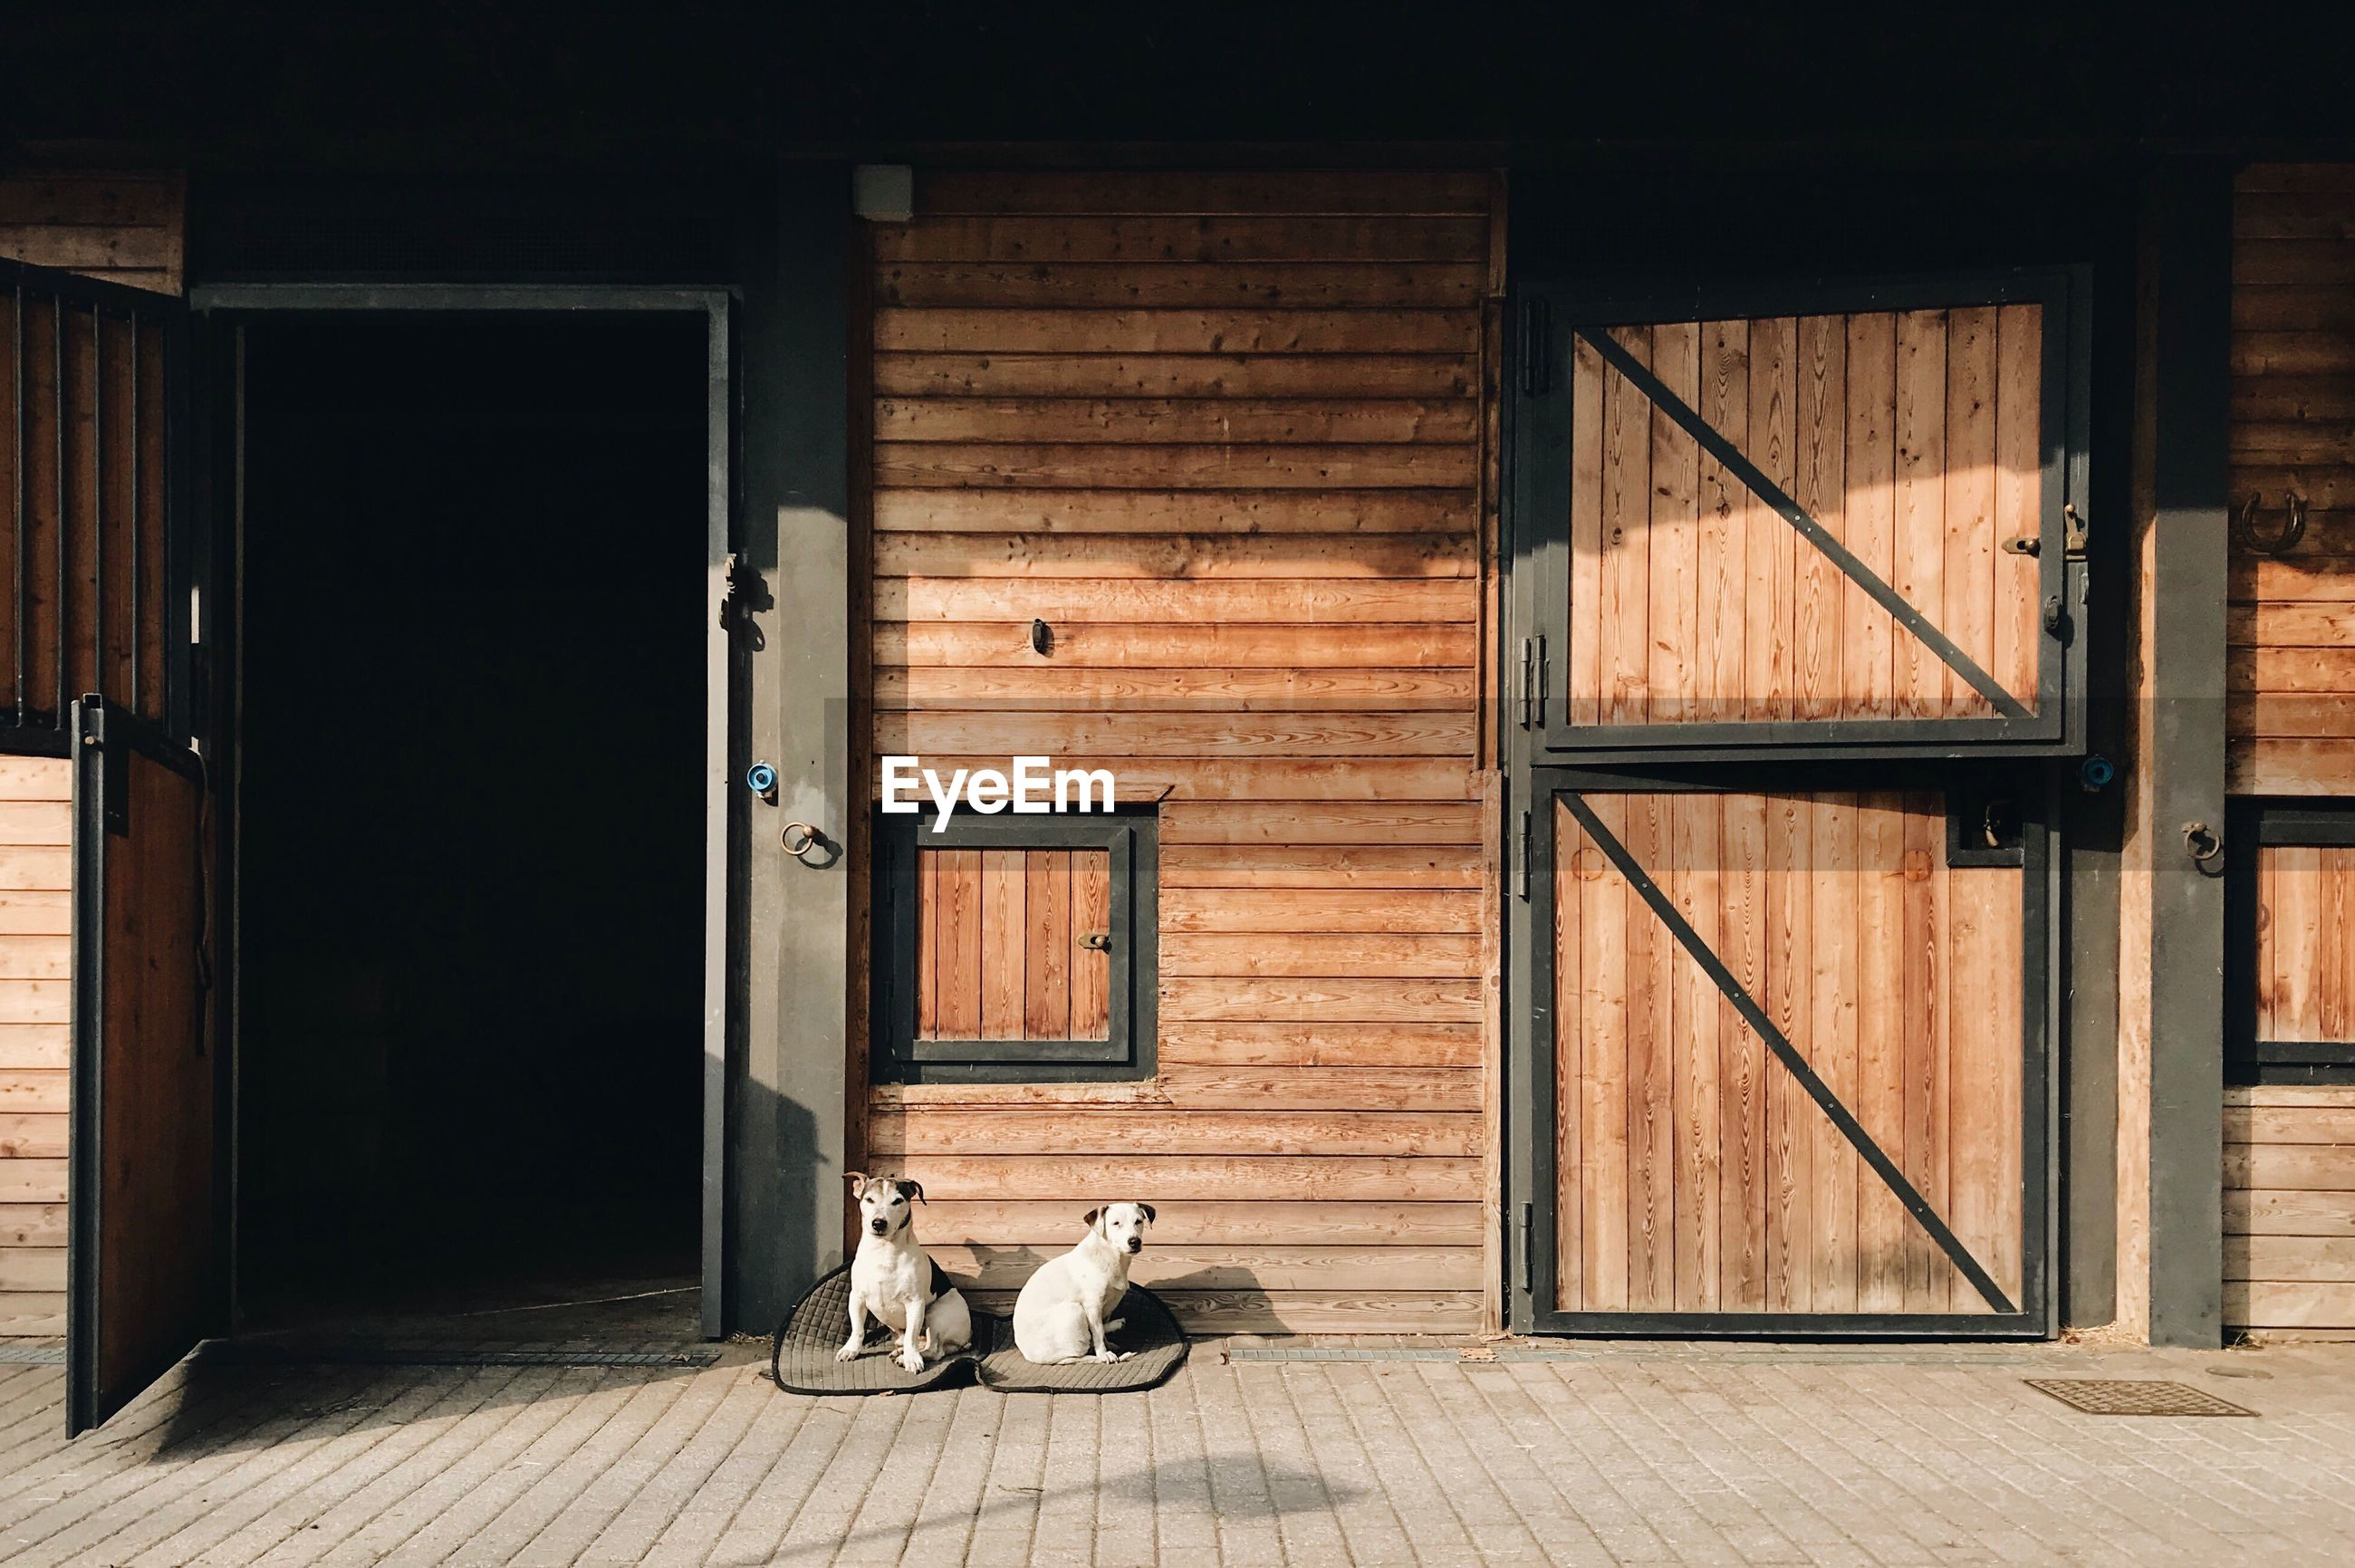 Dogs sitting on wooden floor by door